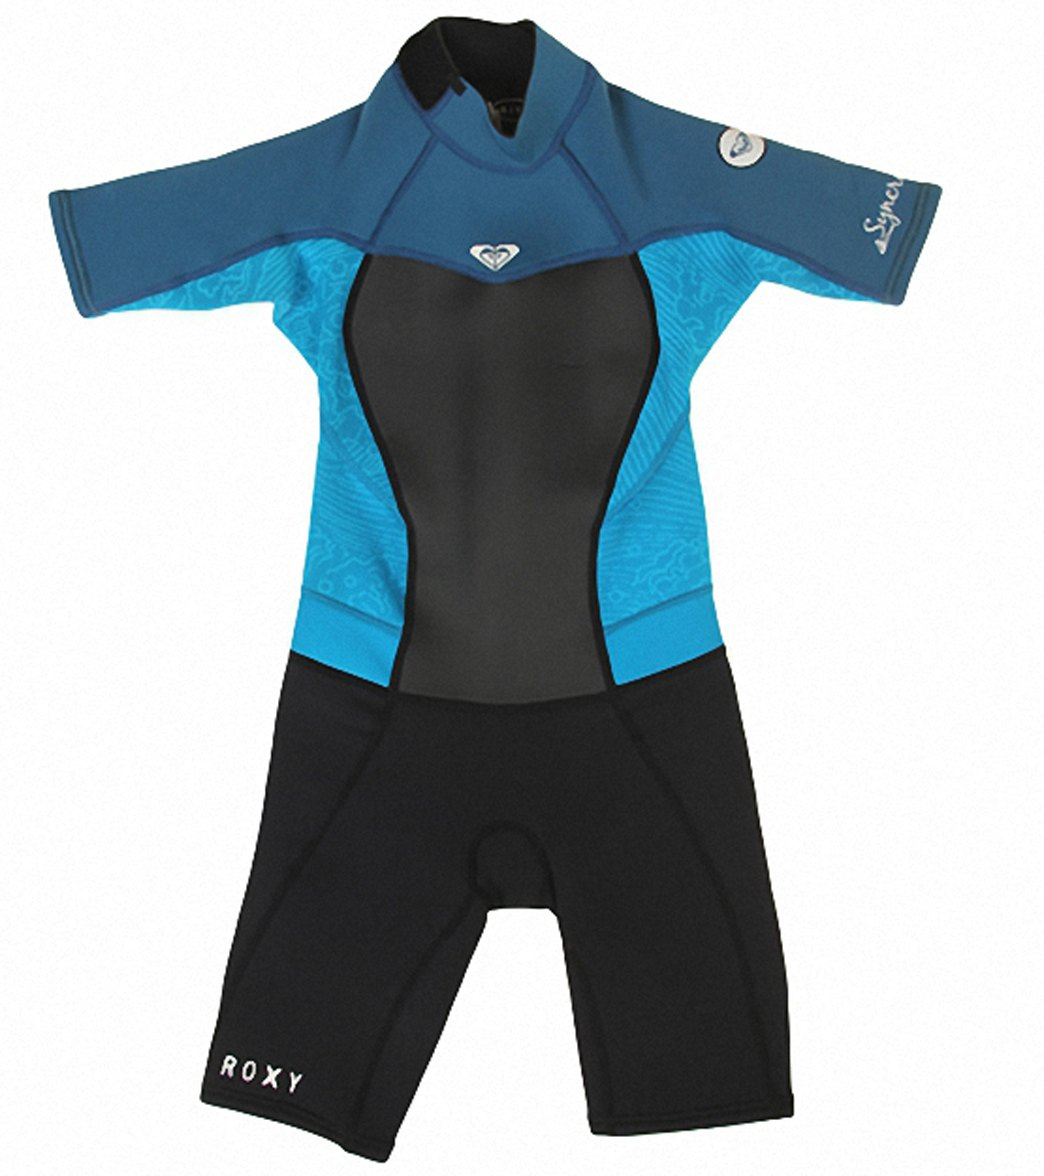 4b633dcd62 Roxy Kids  2MM Spring Suit Wetsuit at SwimOutlet.com - Free Shipping